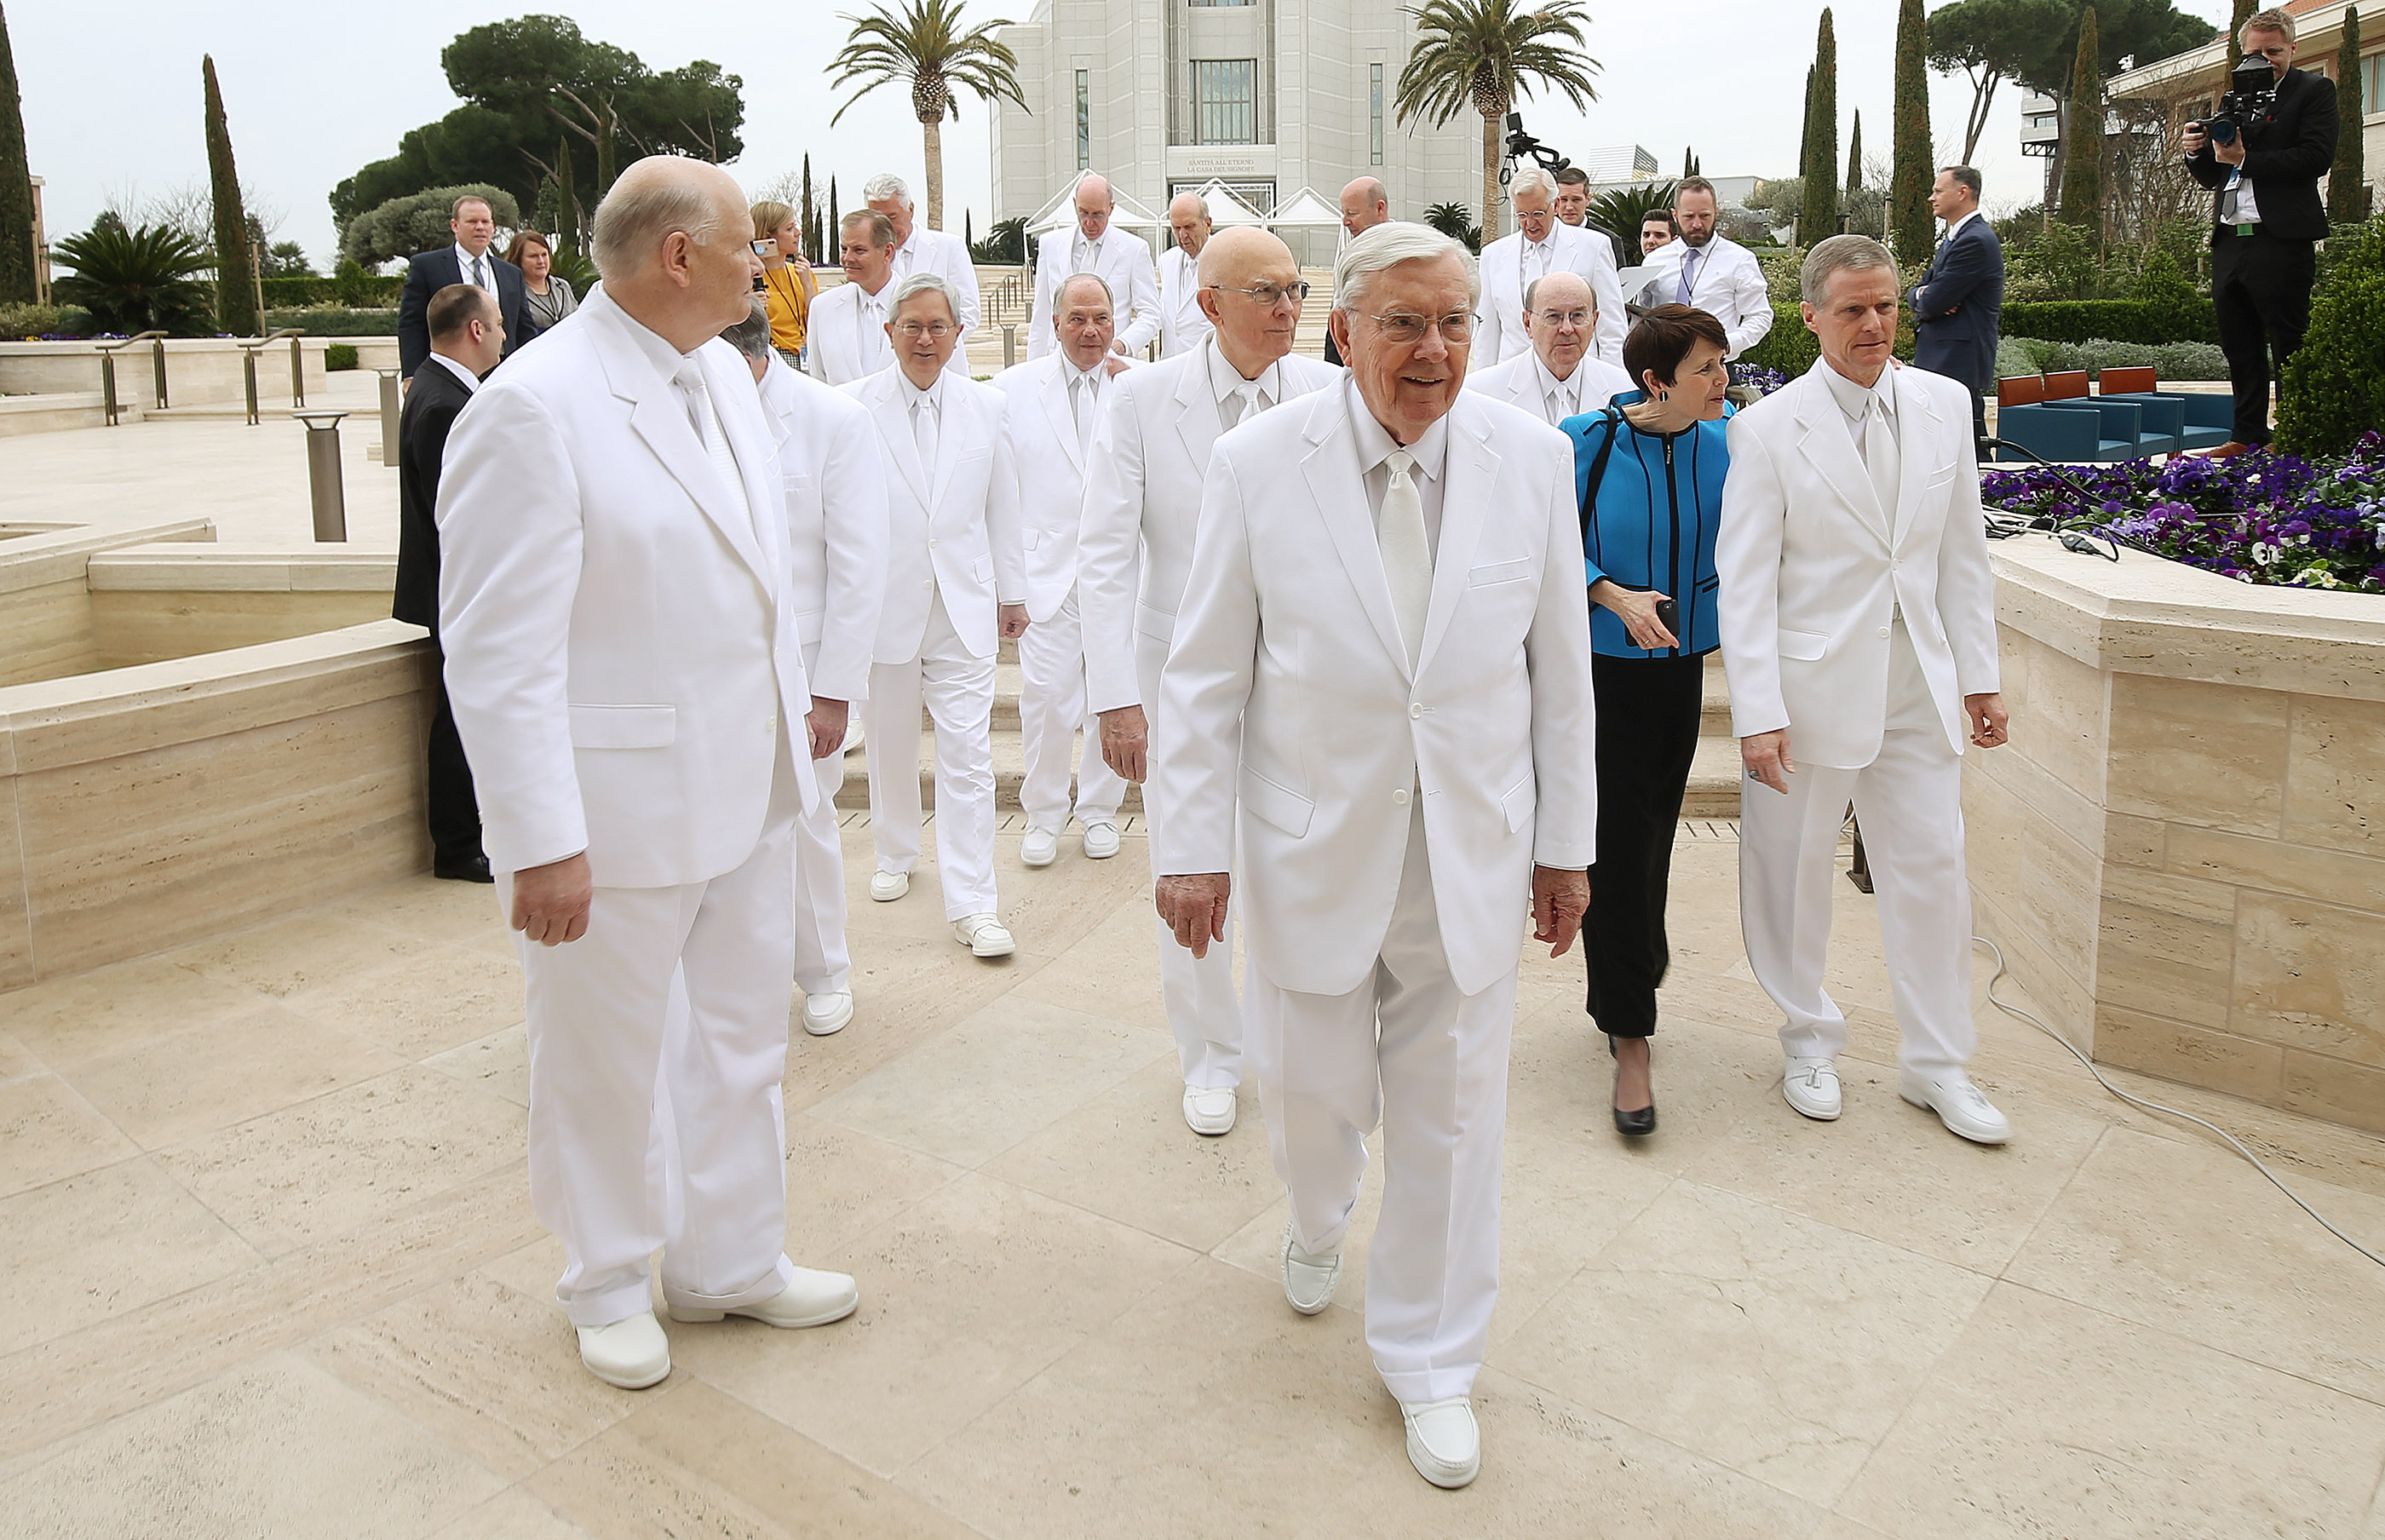 Members of the First Presidency and the Quorum of the Twelve Apostles of The Church of Jesus Christ of Latter-day Saints, walk between photograph locations in the Rome Italy Temple visitors center in Rome, Italy on Monday, March 11, 2019.